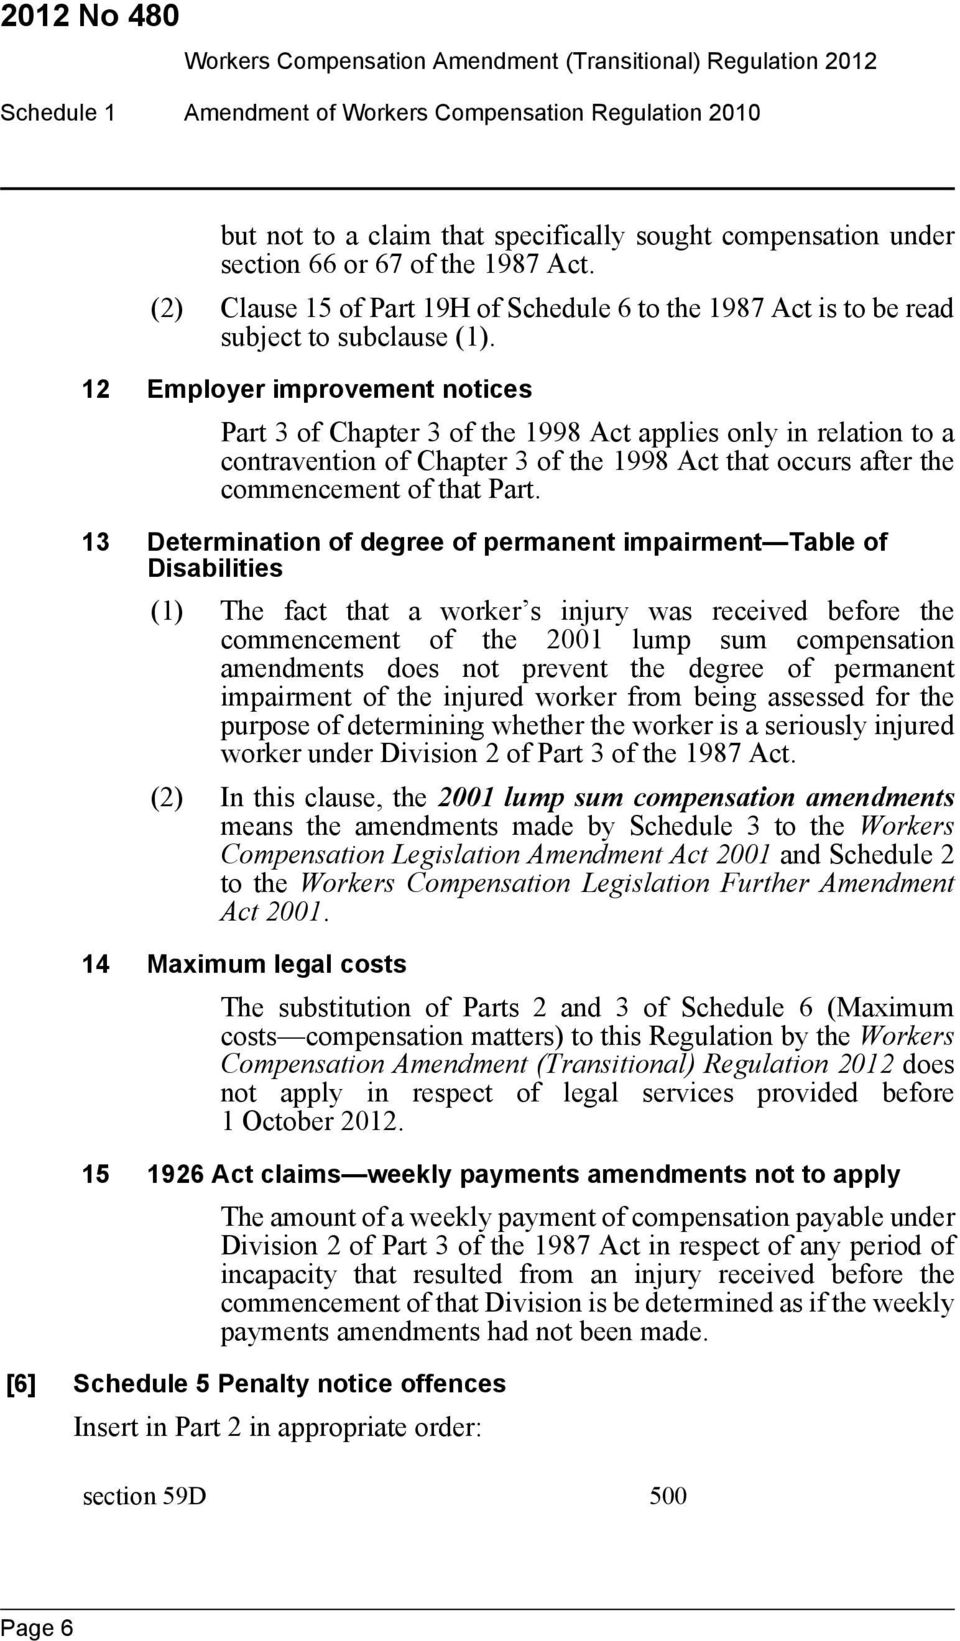 12 Employer improvement notices Part 3 of Chapter 3 of the 1998 Act applies only in relation to a contravention of Chapter 3 of the 1998 Act that occurs after the commencement of that Part.